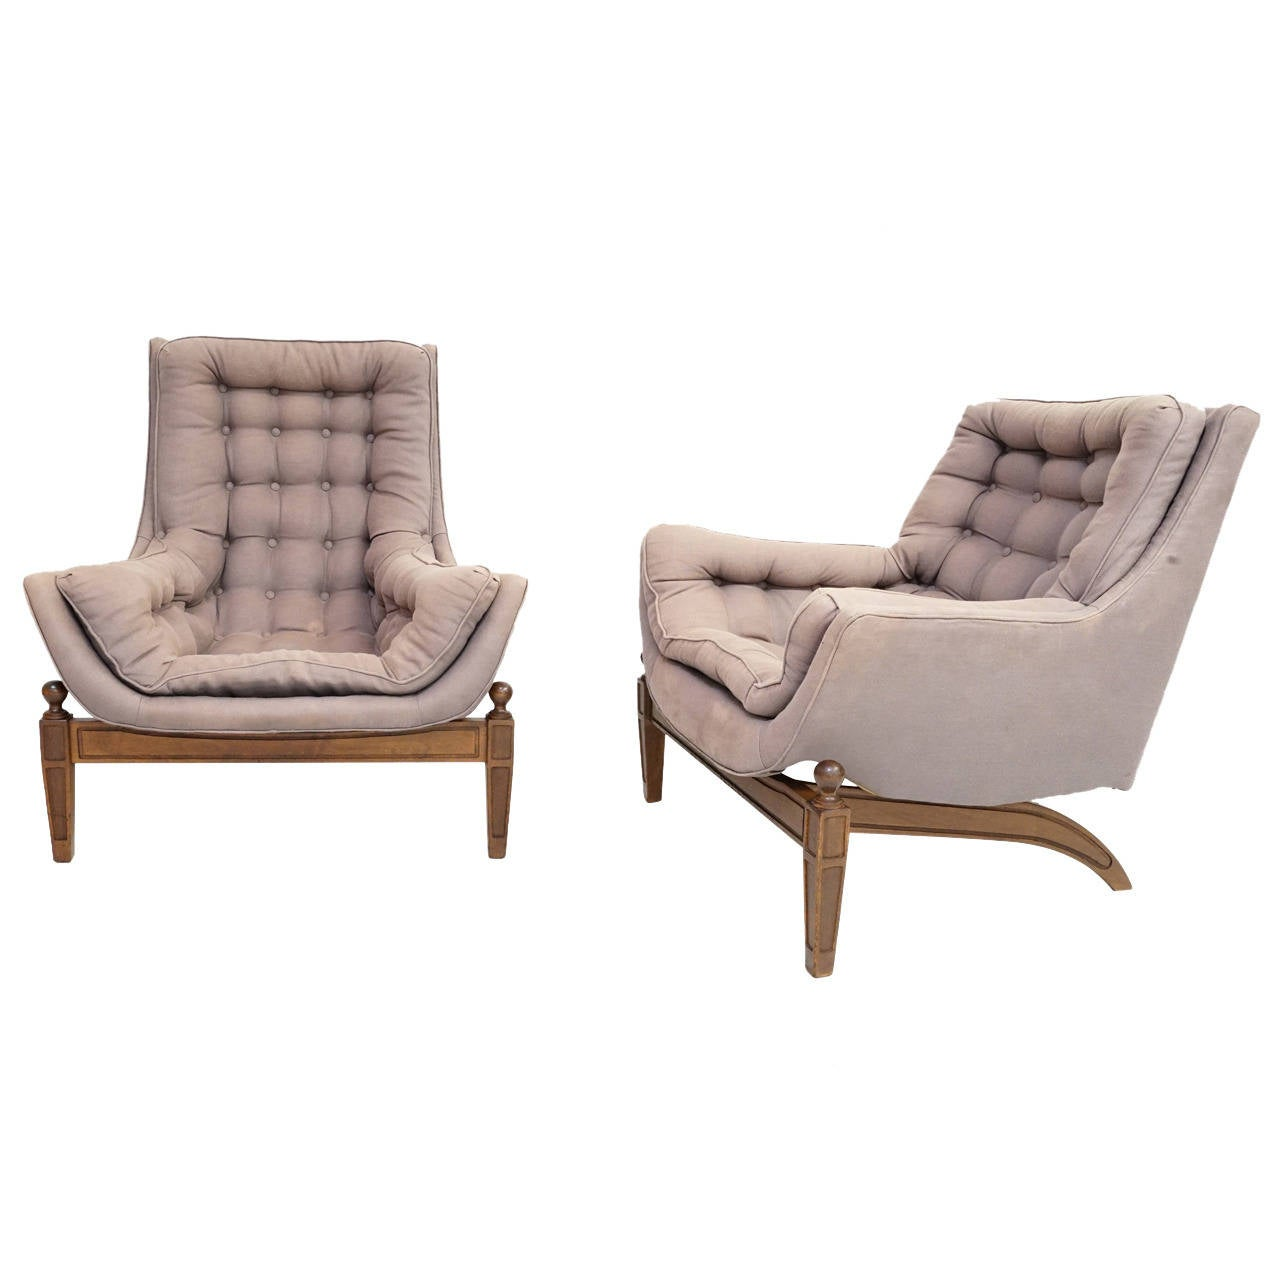 Pair Of Adrian Pearsall Tufted Lounge Chairs With Ottoman